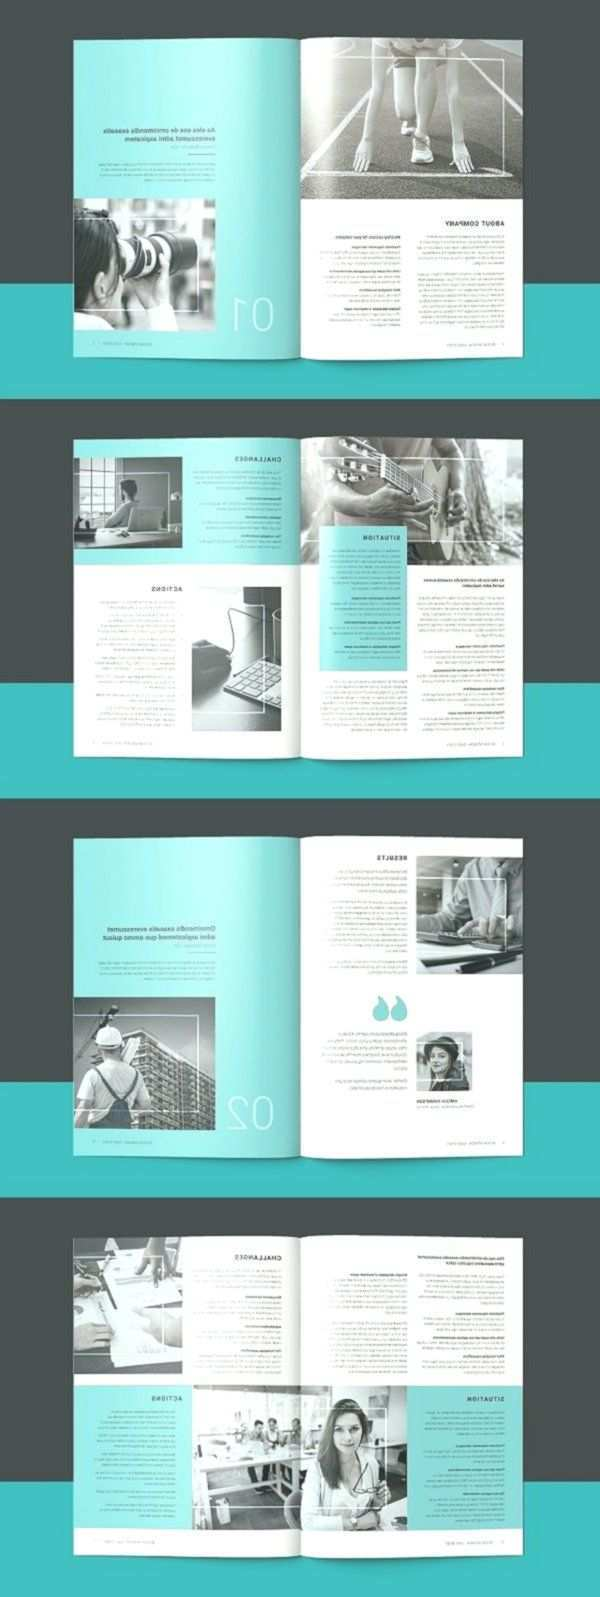 Case Study Booklet Booklet Design Booklet Template Magazine Layout Inspiration